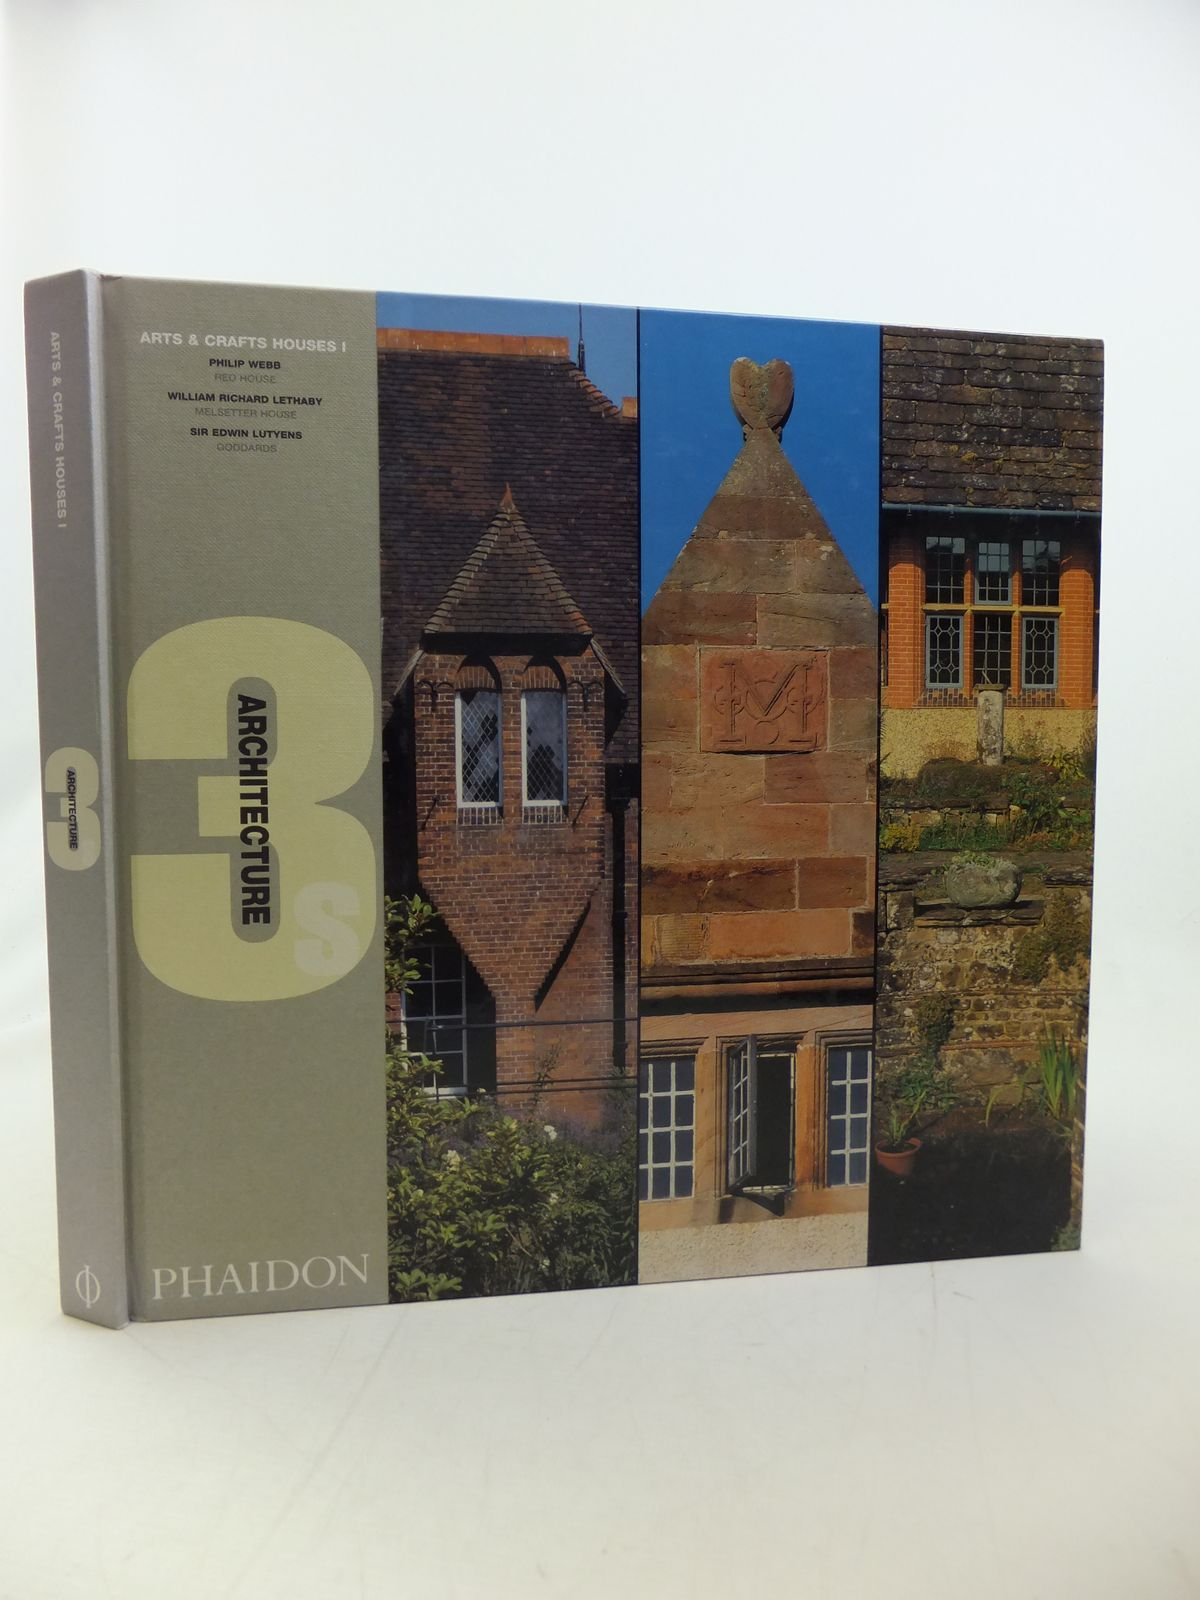 Photo of ARTS & CRAFTS HOUSES I (ARCHITECTURE 3S) written by Dunlop, Beth Hollamby, Edward Garnham, Trevor Edwards, Brian published by Phaidon Press Limited (STOCK CODE: 2114050)  for sale by Stella & Rose's Books